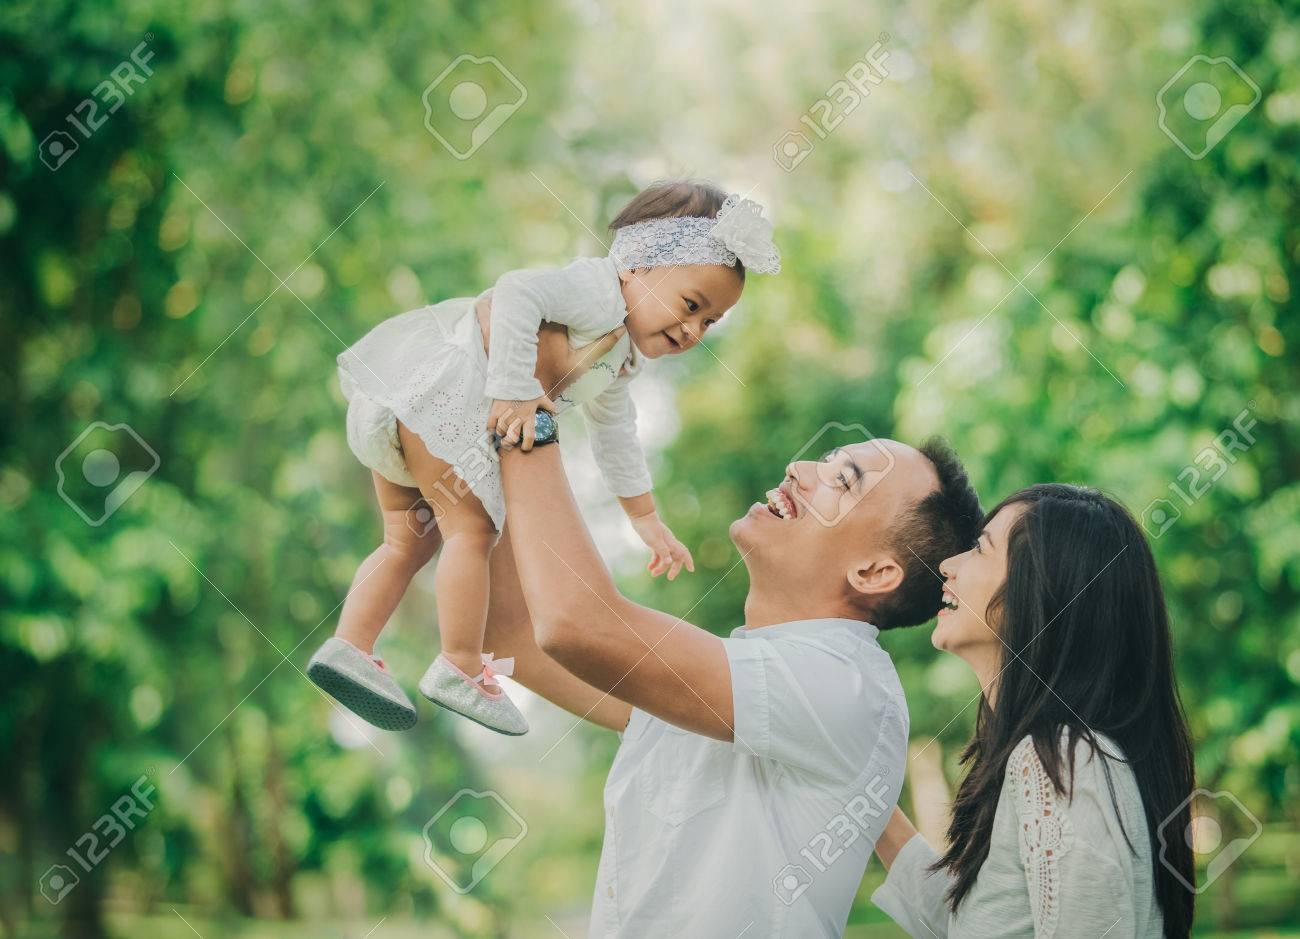 Portrait of beautiful family with cute baby in the park having fun together stock photo